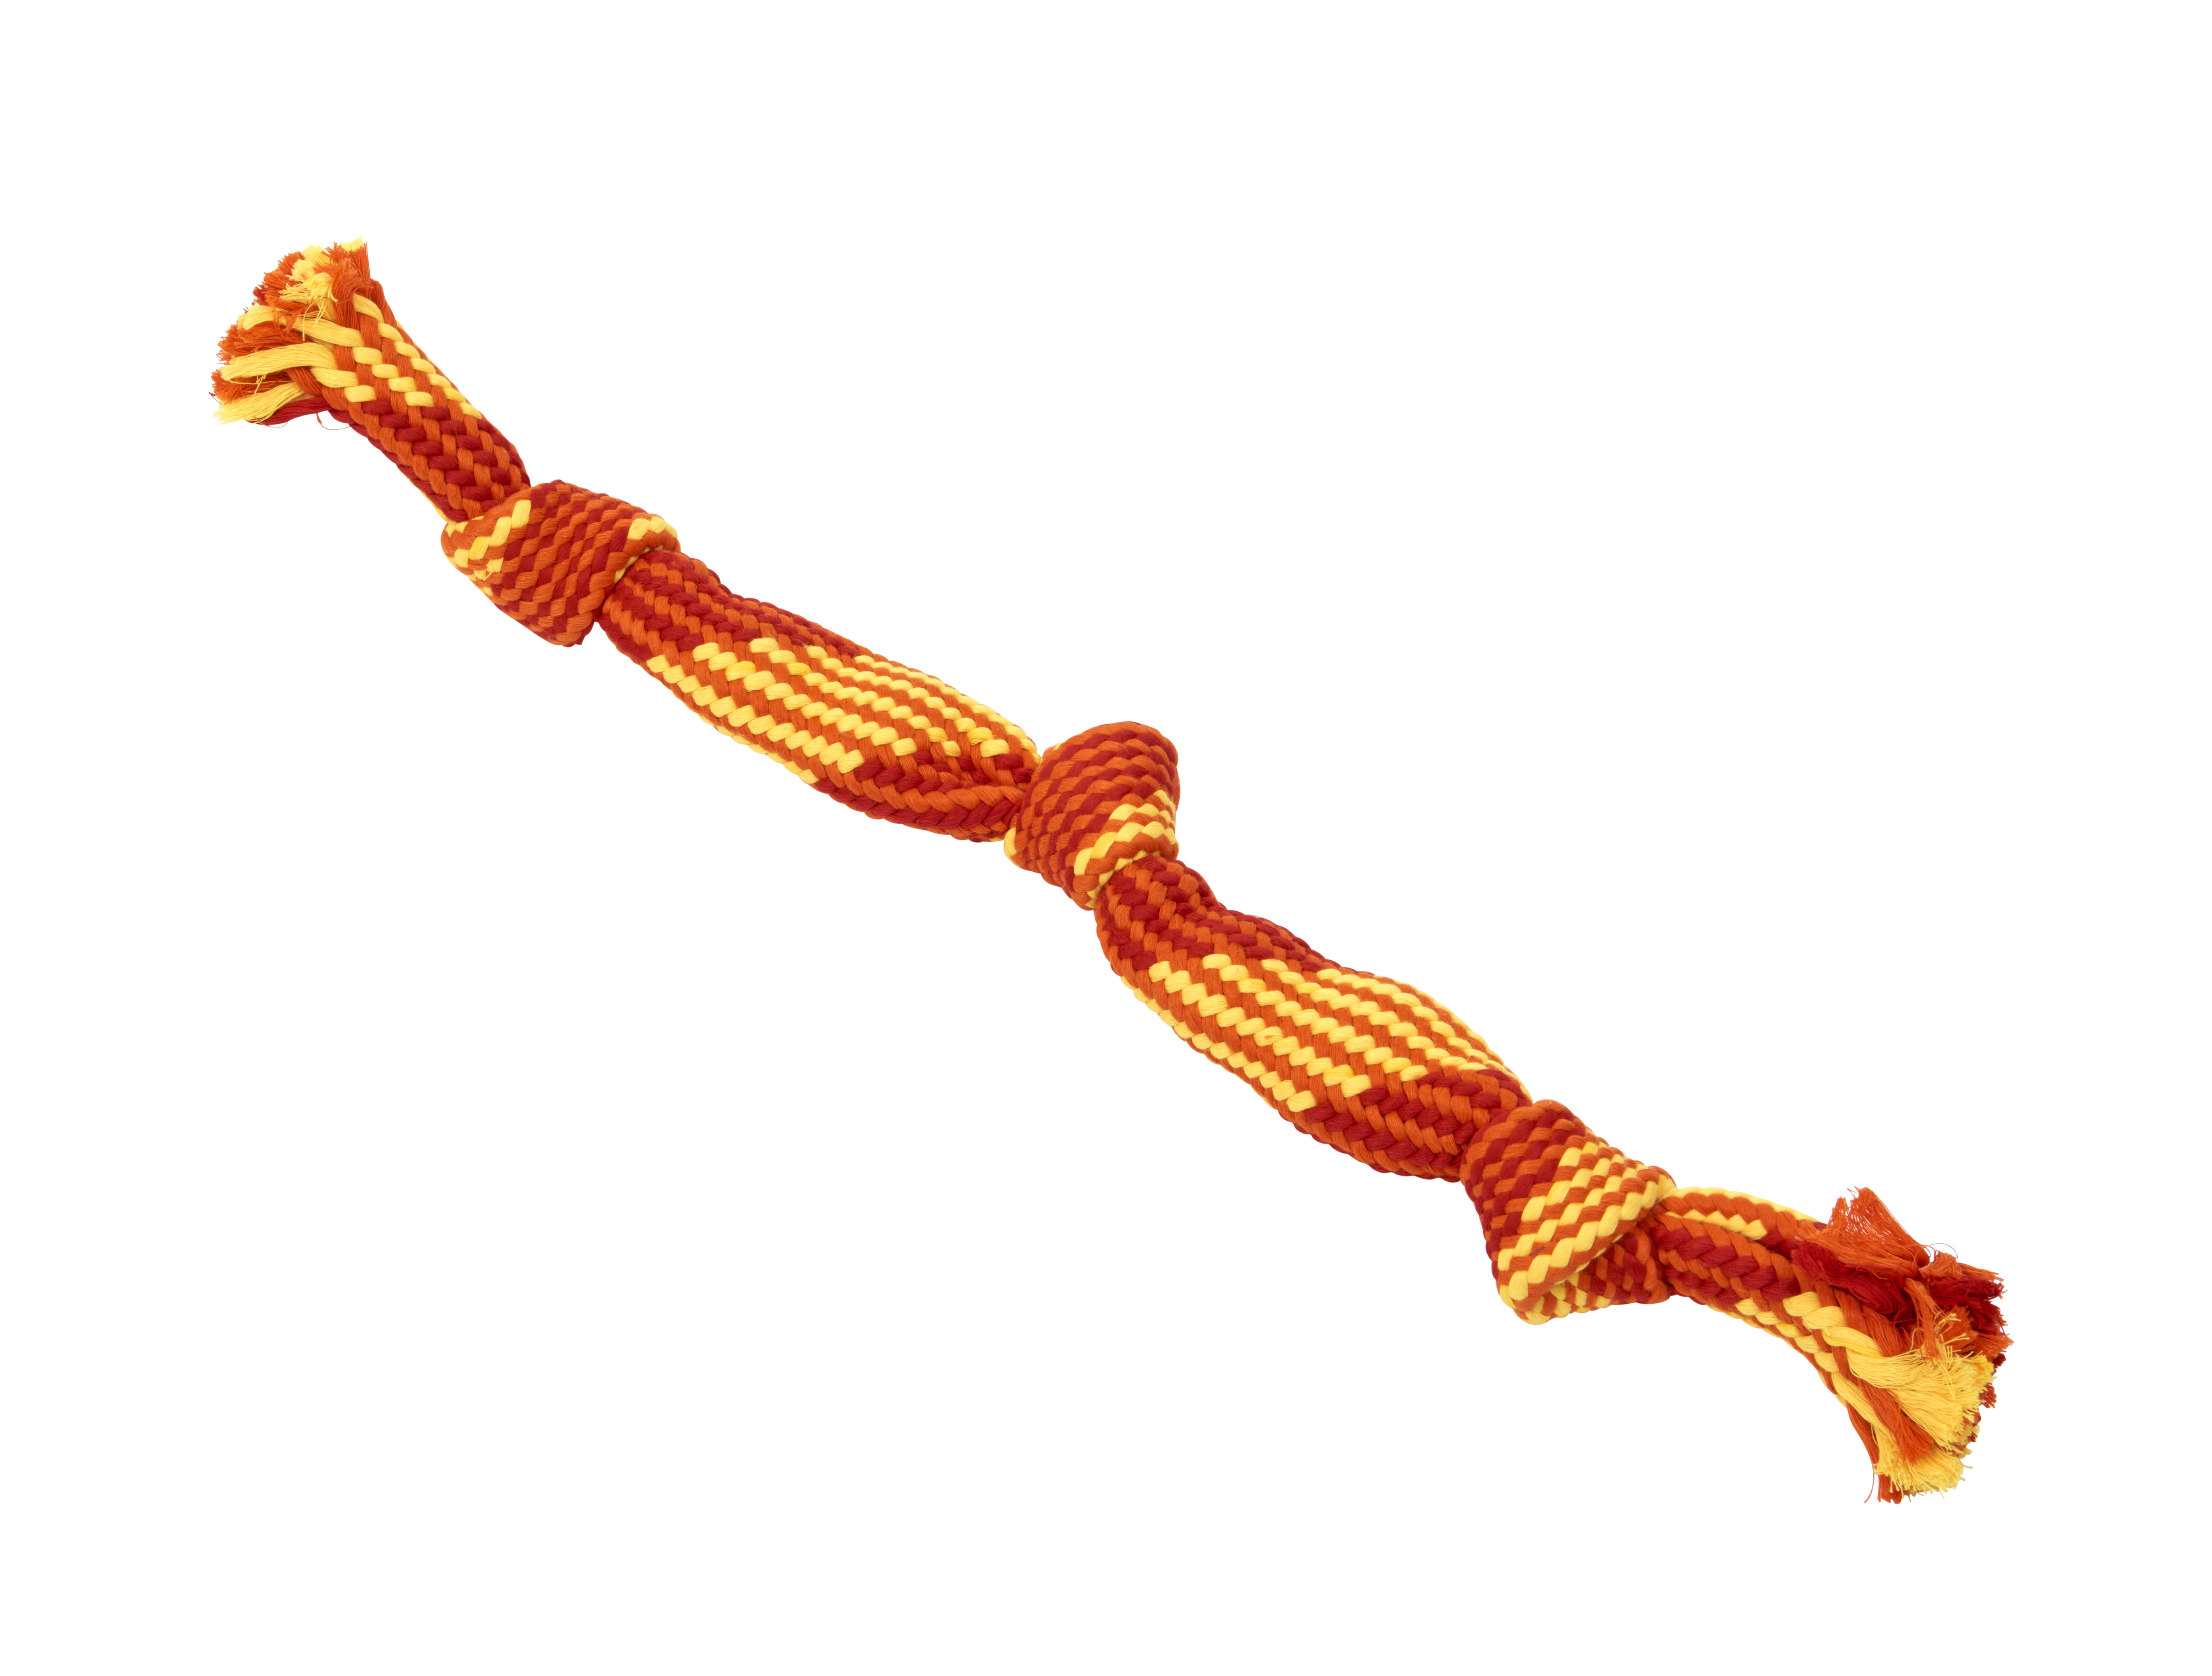 BUSTER Colour Squeak Rope, red/orange/yellow, large, 58 cm